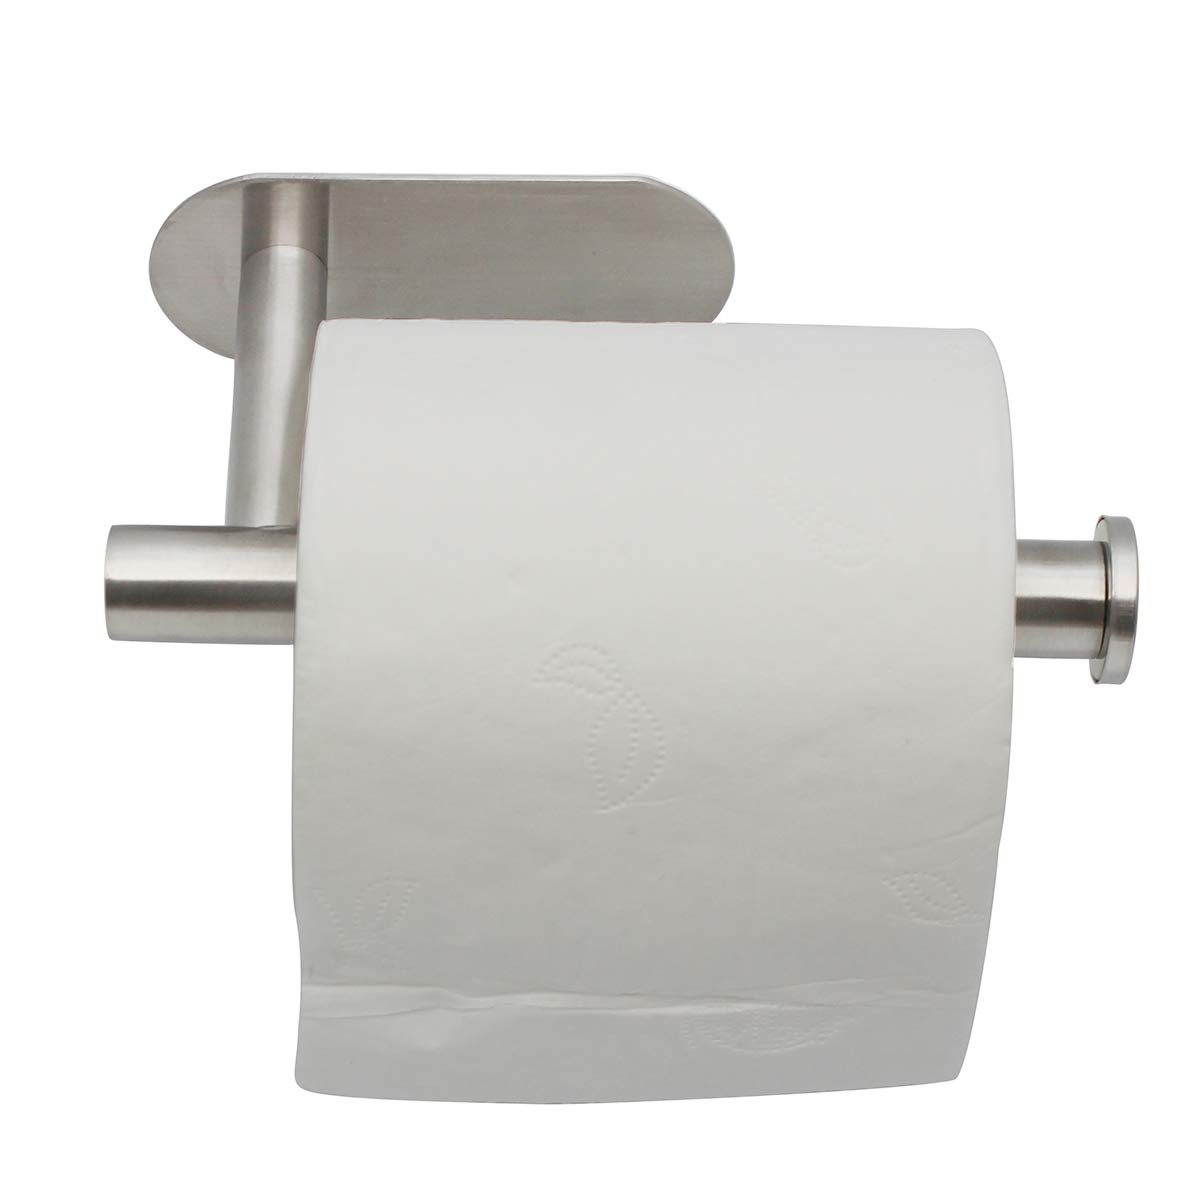 Toilet Paper Holder 3M Self Adhesive Bathroom Paper Towel Roll Holder Wall Mount - Toilet Roll Holder SUS 304 Stainless Steel Can Remove